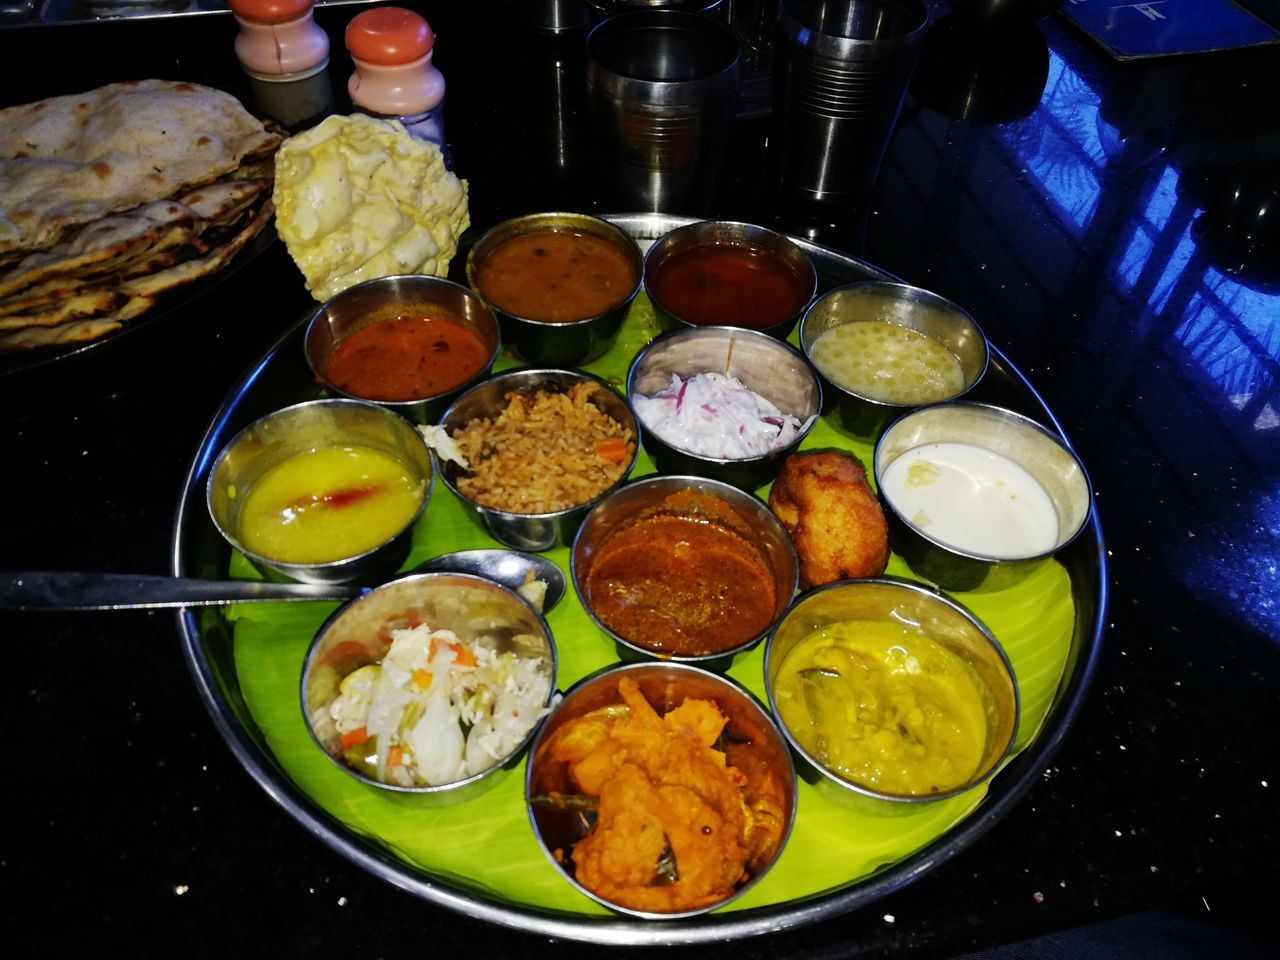 Food And Drink Food High Angle View Freshness Ready-to-eat Plate Cultures Healthy Eating Indoors  No People Day Tamilnadutourism Tamil Thali Tamil Food New Experiences Heaven And Earth India's End